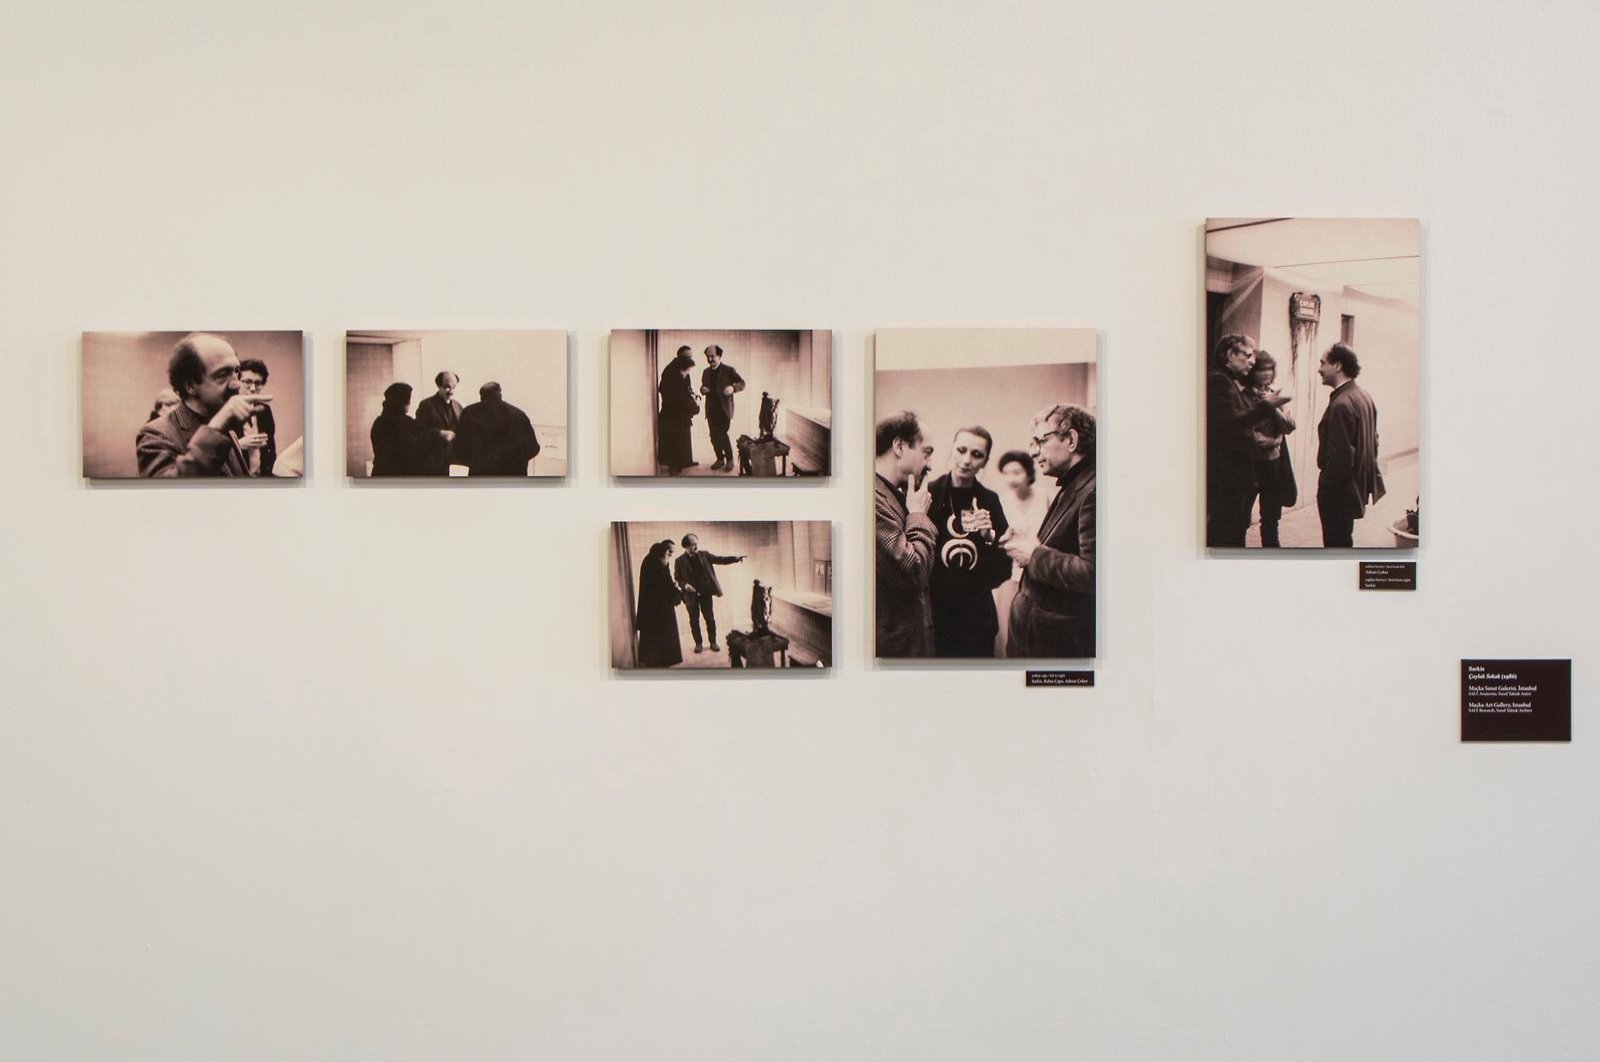 An exhibition view in Forum at SALT Beyoğlu, Istanbul. (PHOTO COURTESY OF SALT Research)